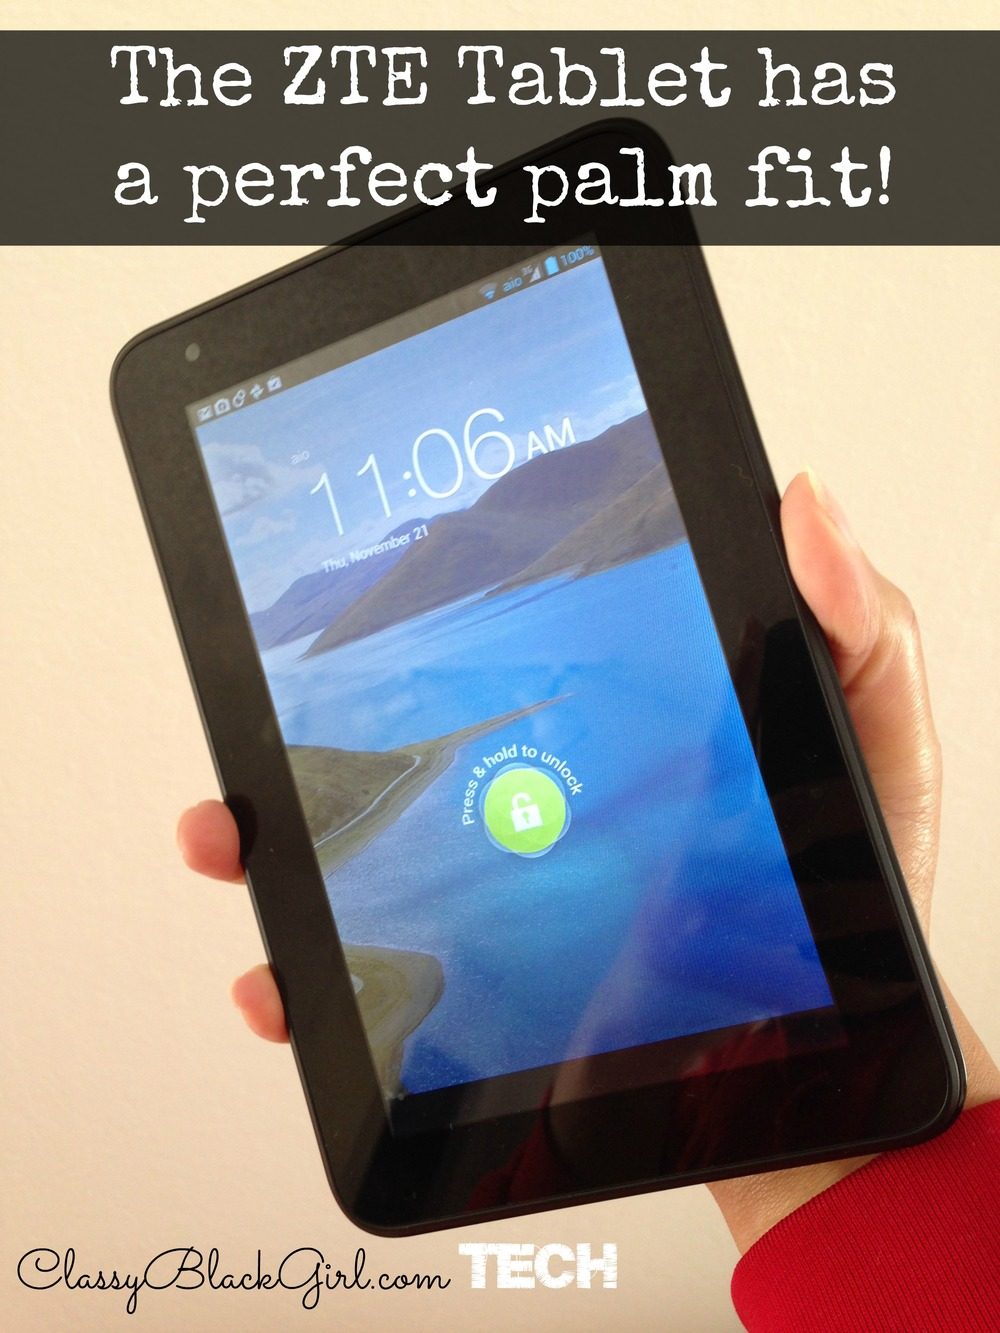 ZTE Tablet Palm Fit ClassyBlackGirl.com TECH